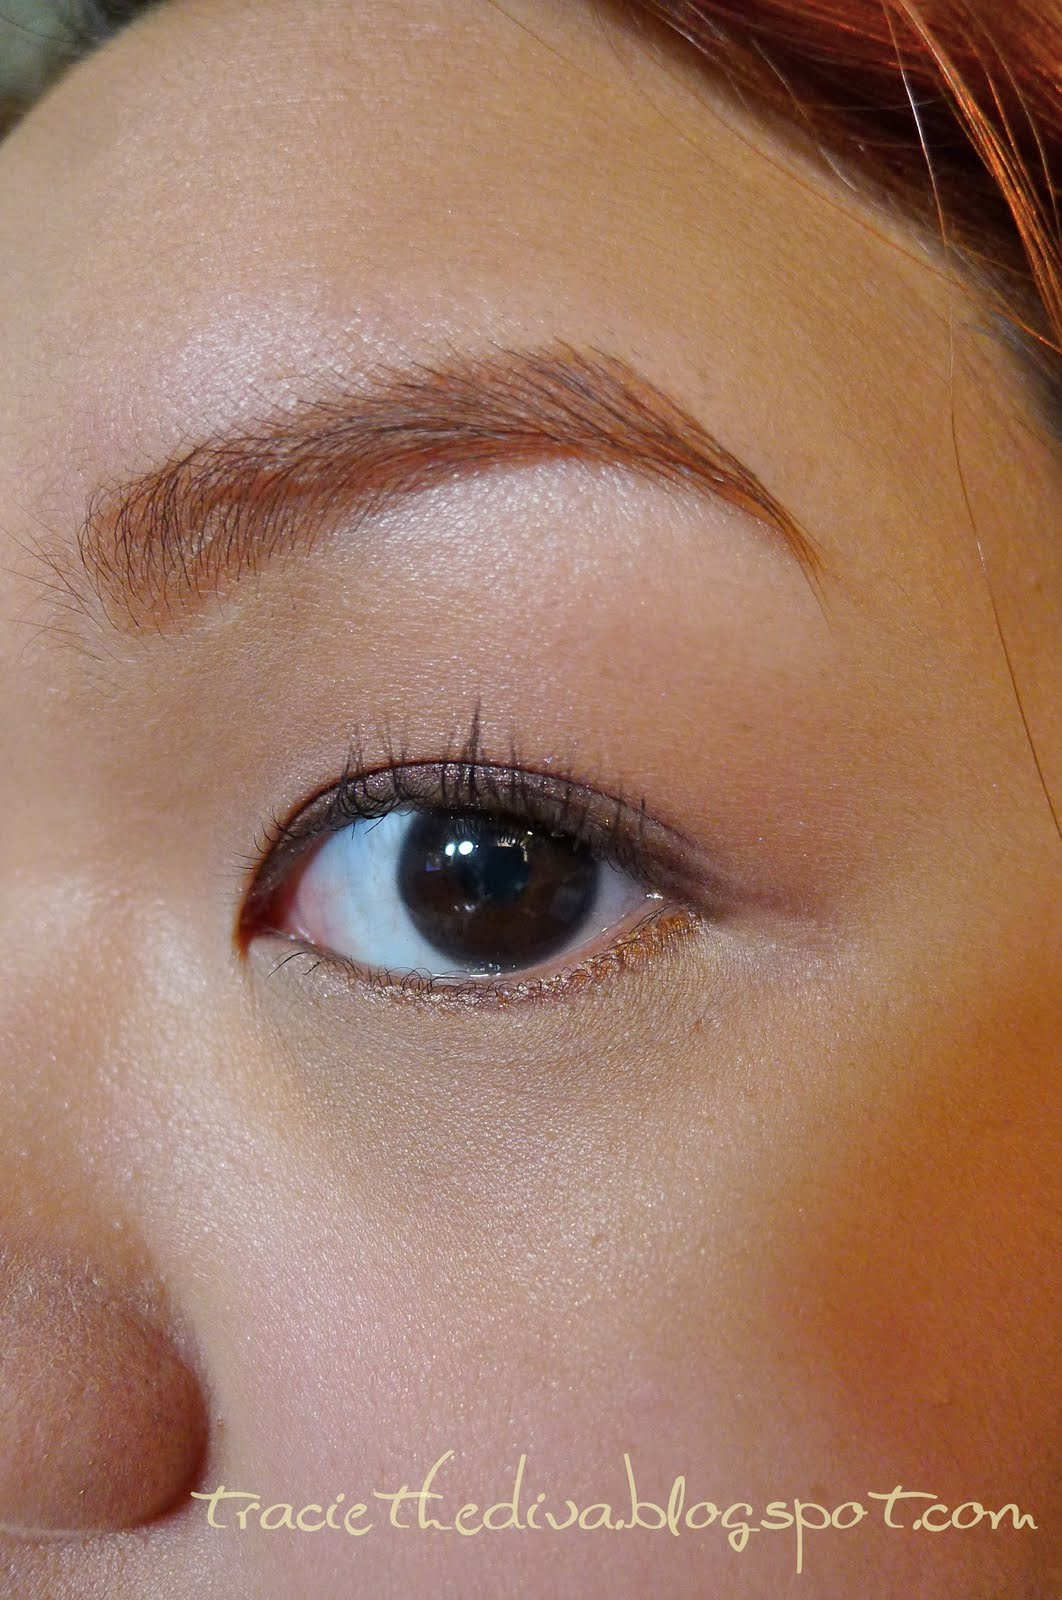 Traciethediva: Shopping Guide: Brow Quest: Nichido Brow ...